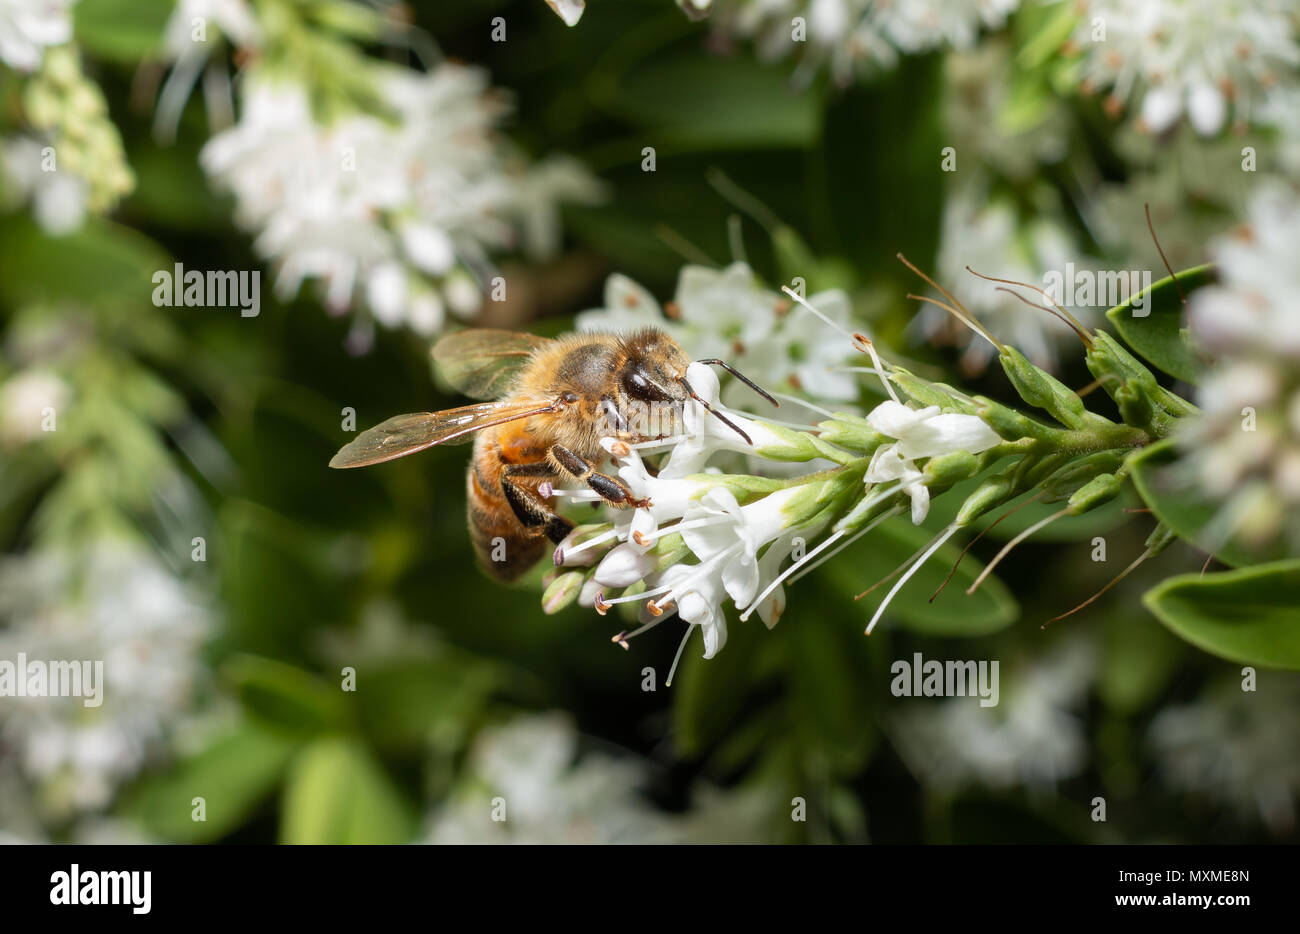 close up of a wild bee gathering nectar from white flowers - Stock Image